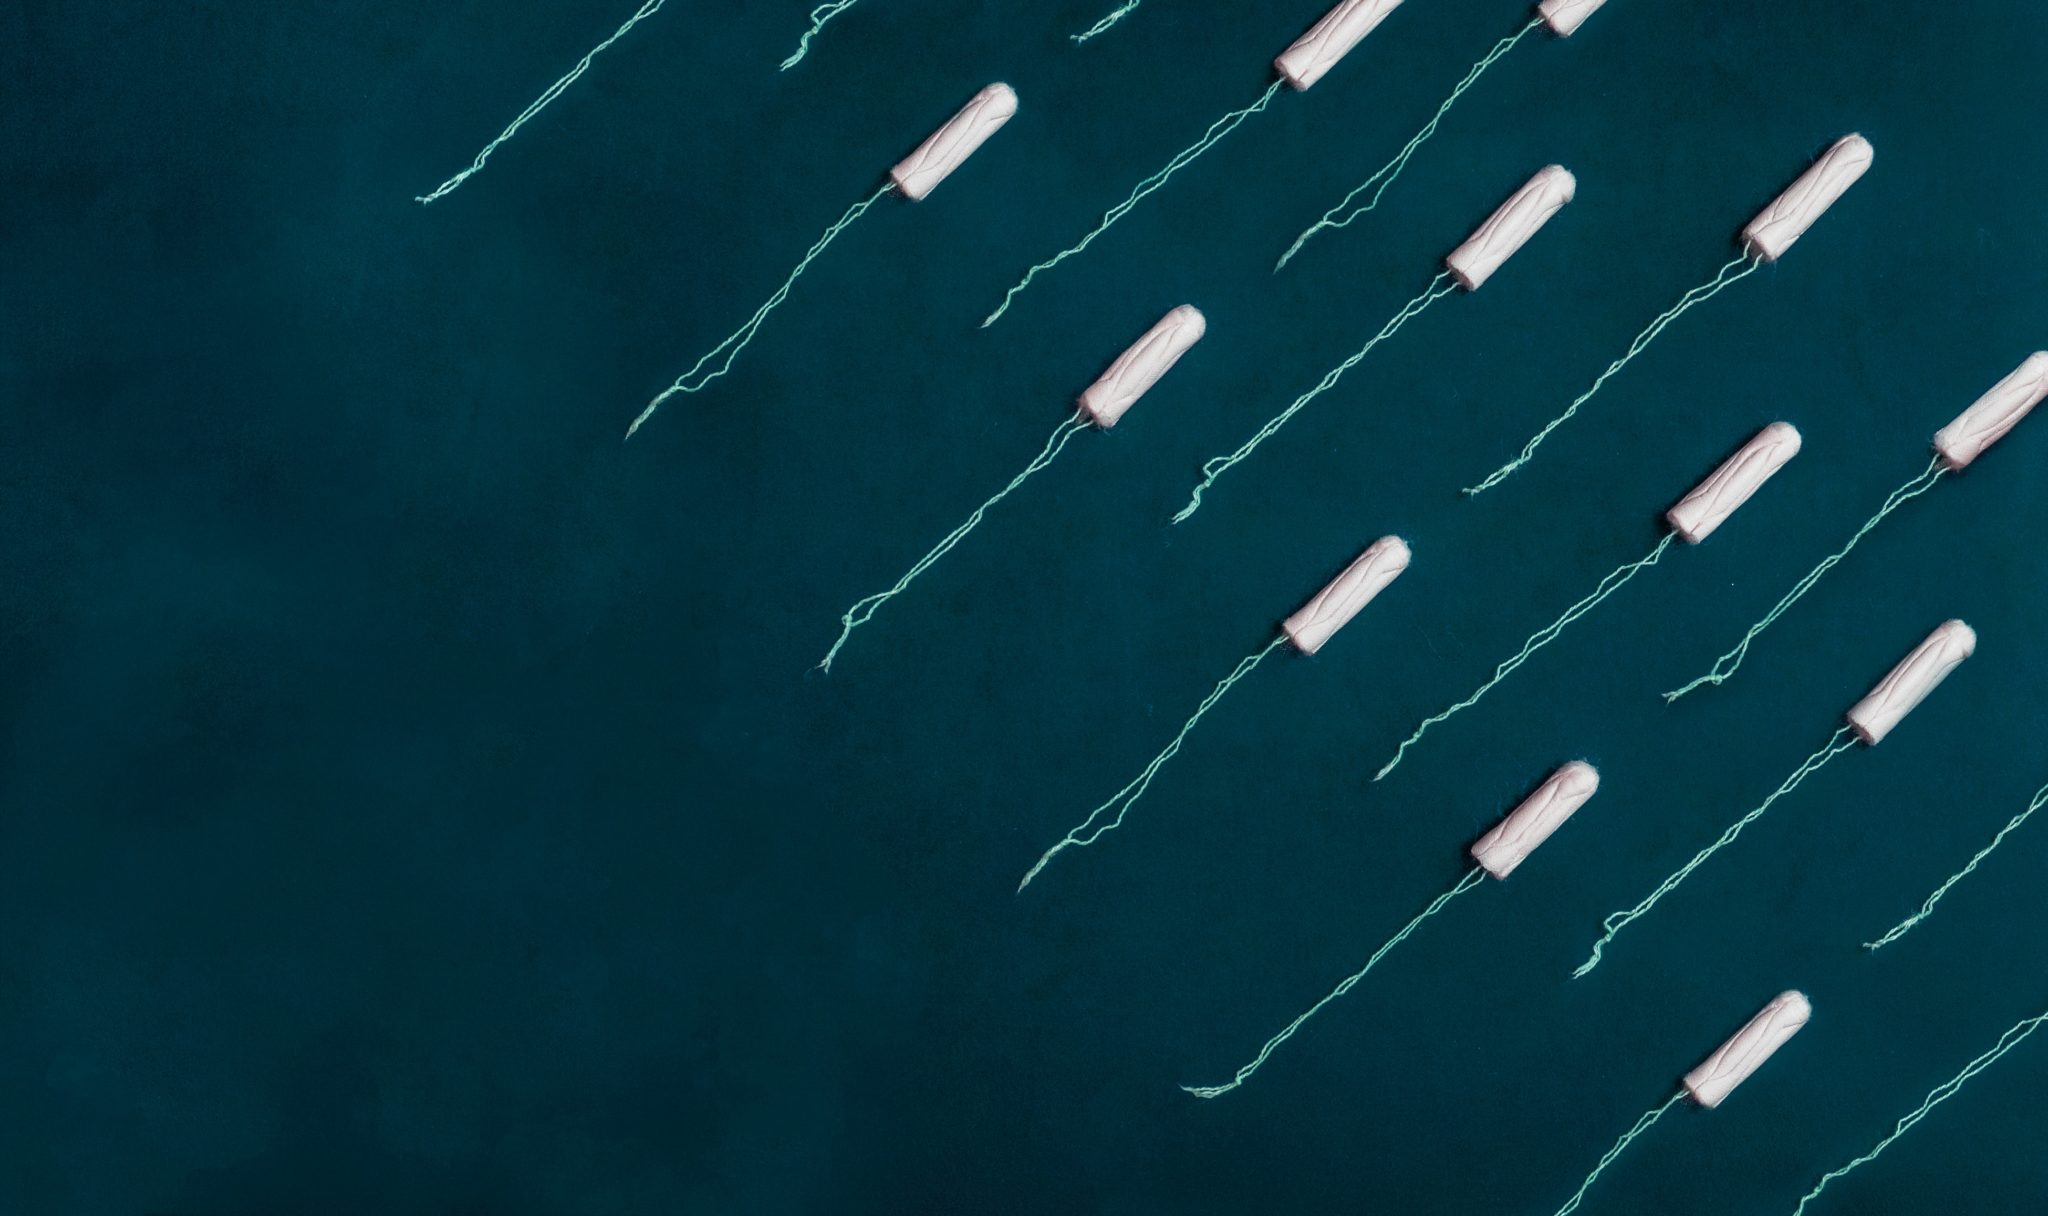 birds eye view of multiple tampons laid out on a dark background